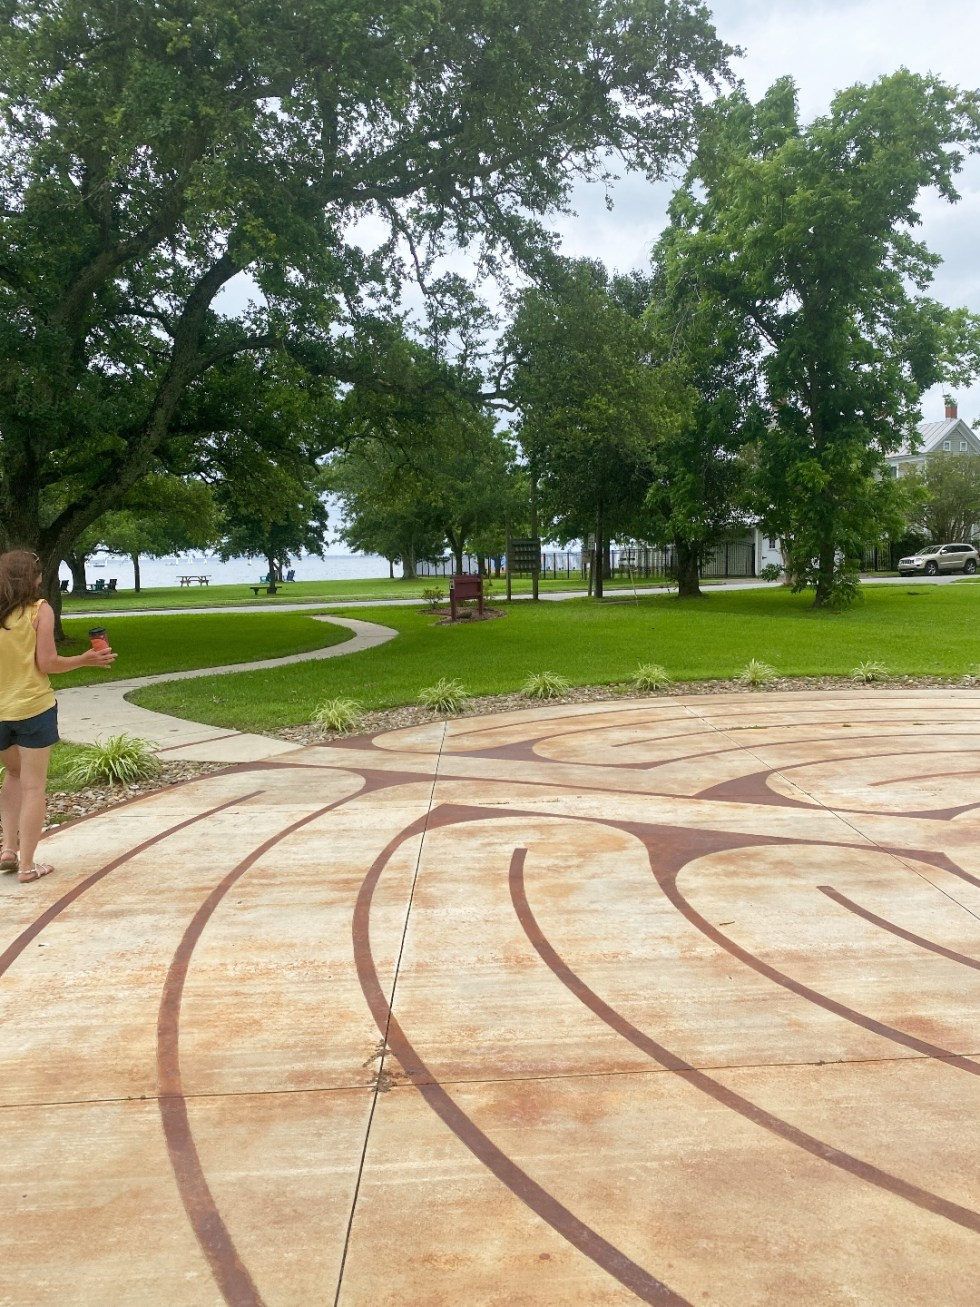 What to Do in Oriental, NC - I'm Fixin' To - @imfixintoblog | Things to do in Oriental NC by popular NC travel blog, I'm Fixin' To: image of a community labyrinth.